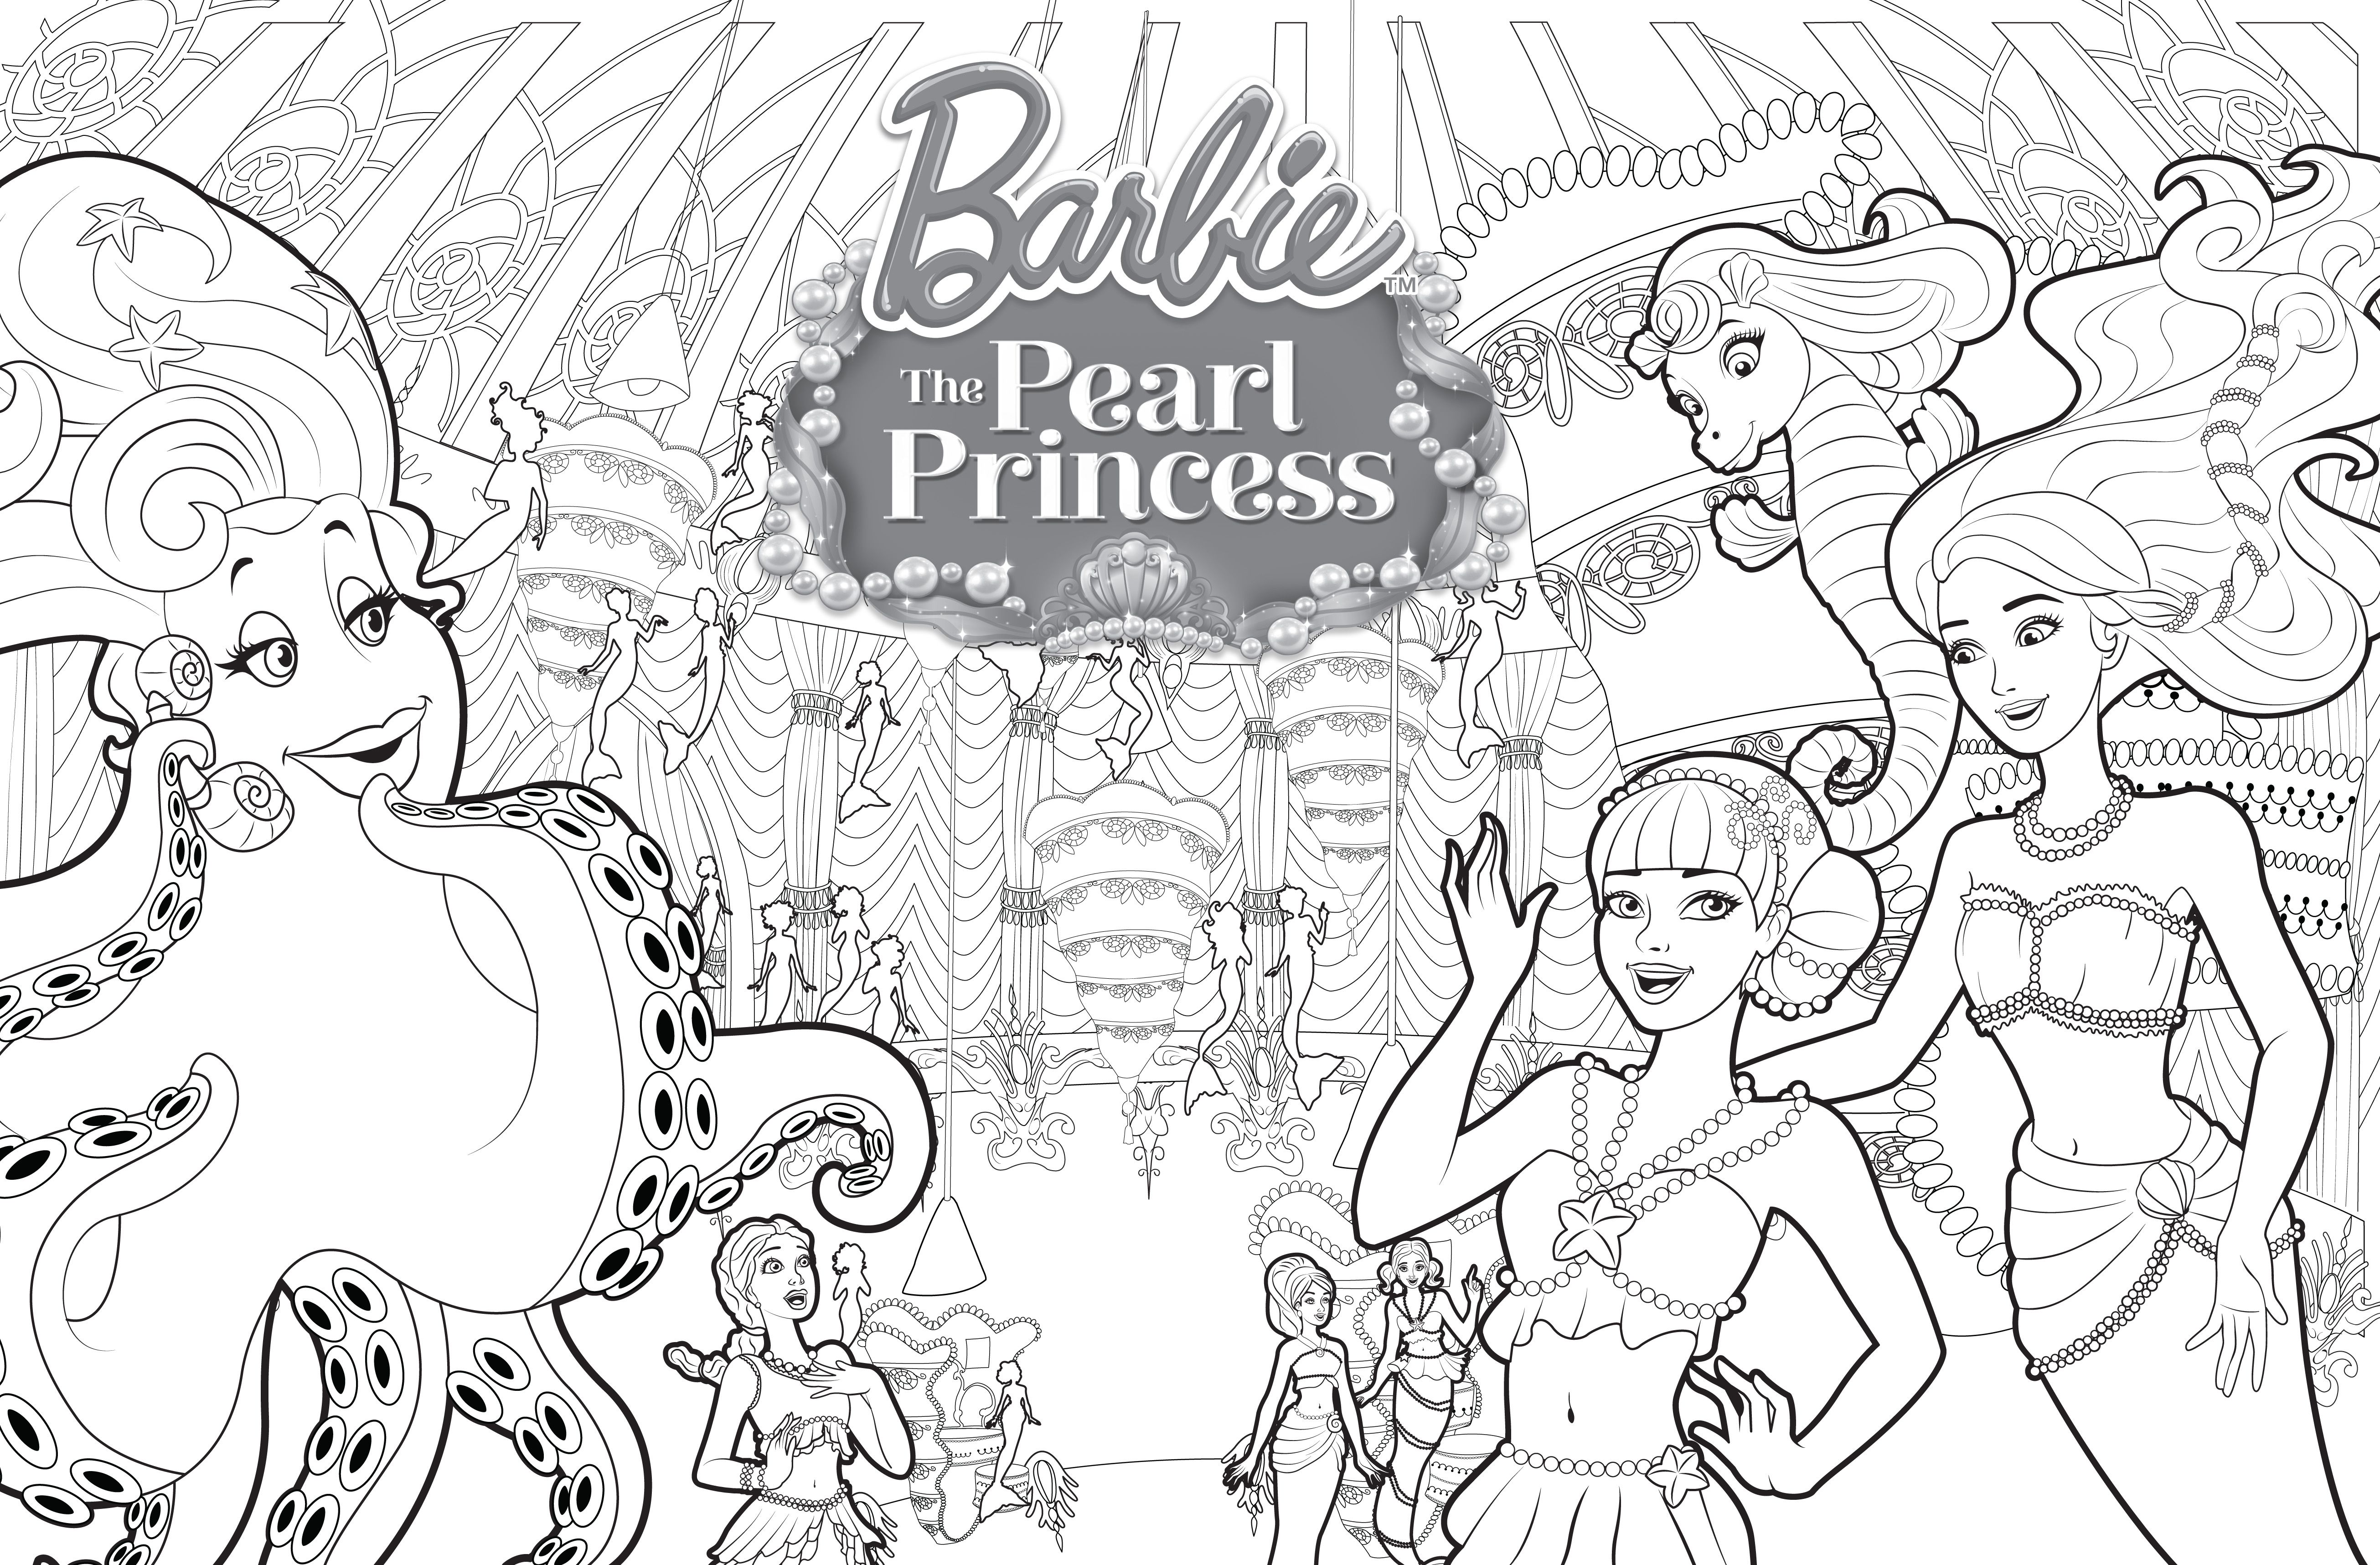 Coloring pages of princess barbie - Coloring Pages Barbie